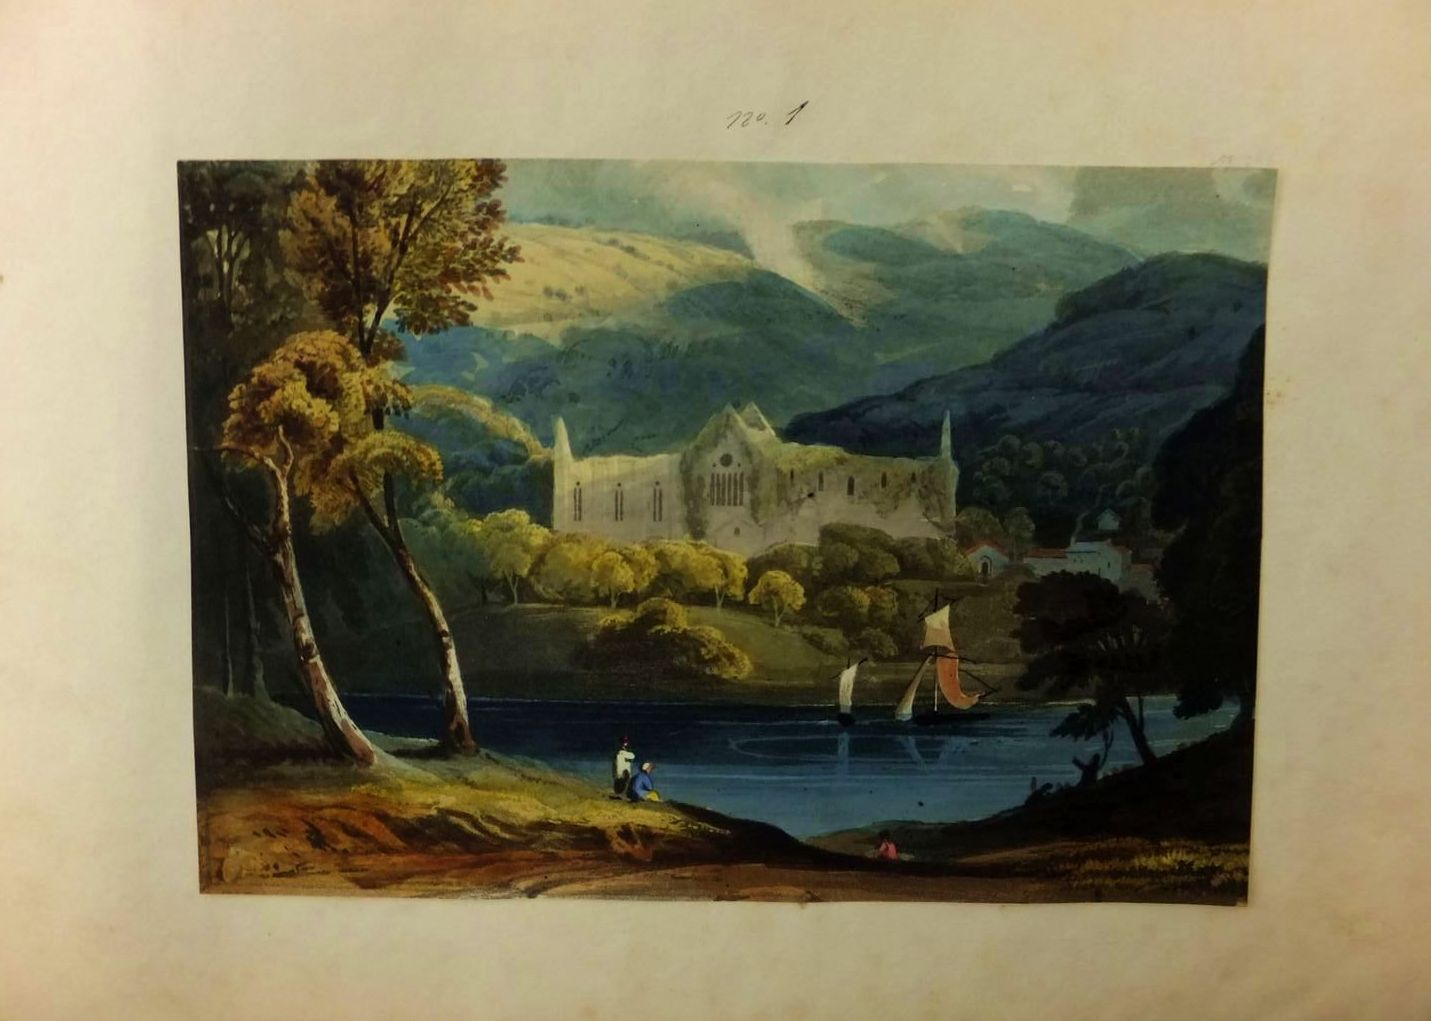 Photo of A PICTURESQUE DESCRIPTION OF THE RIVER WYE FROM THE SOURCE TO ITS JUNCTION WITH THE SEVERN written by Fielding, T.H. published by Ackermann & Co. (STOCK CODE: 570371)  for sale by Stella & Rose's Books